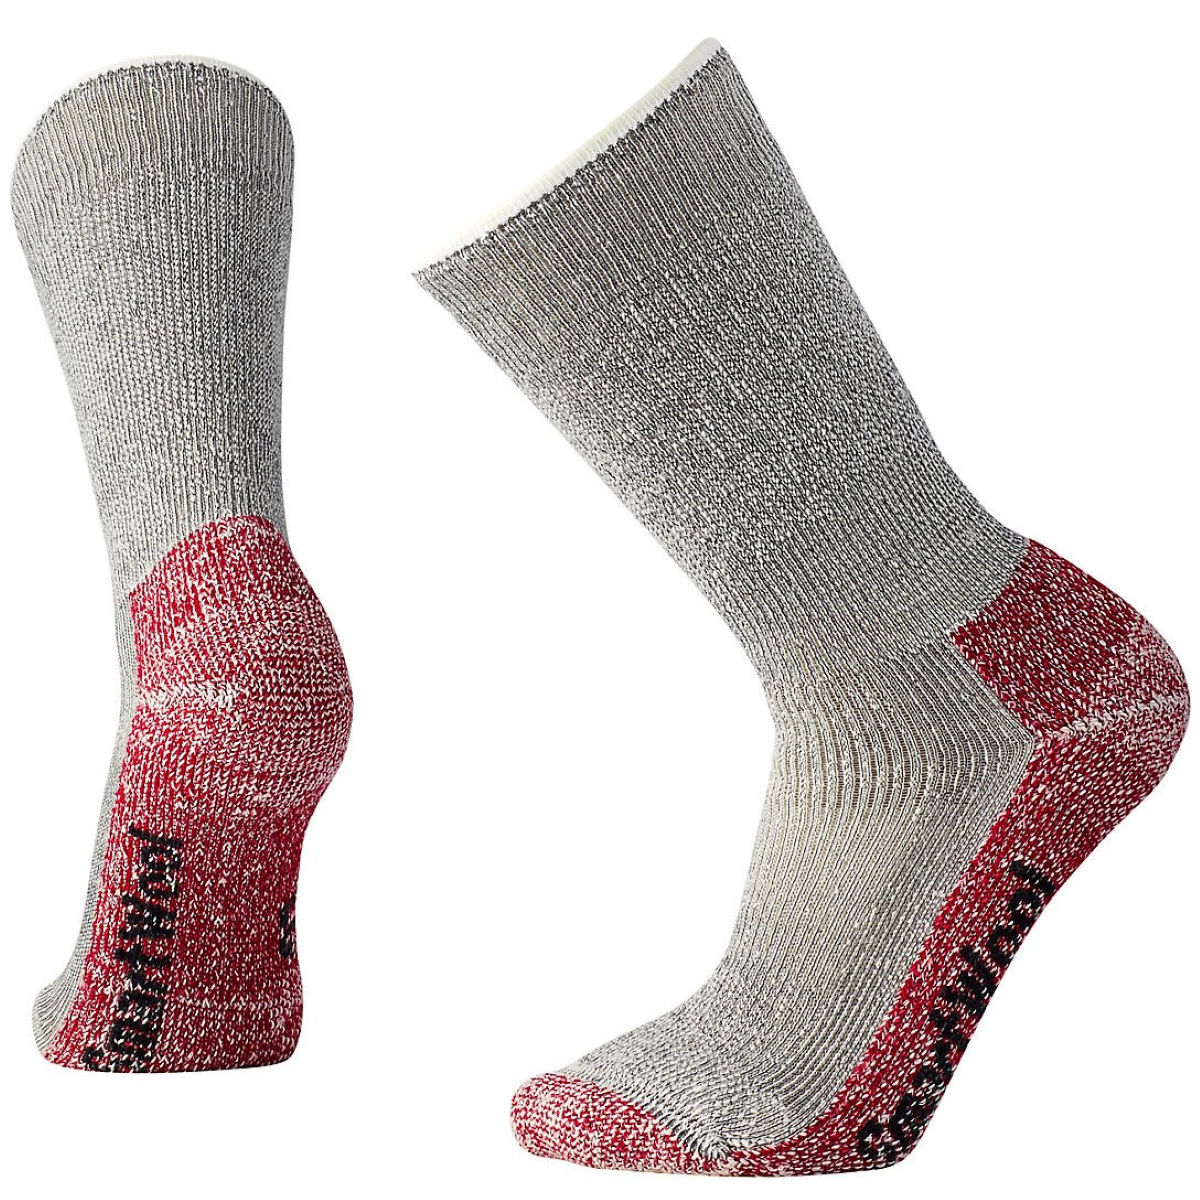 Smartwool Mountaineering Extra Heavy Socks - Calcetines